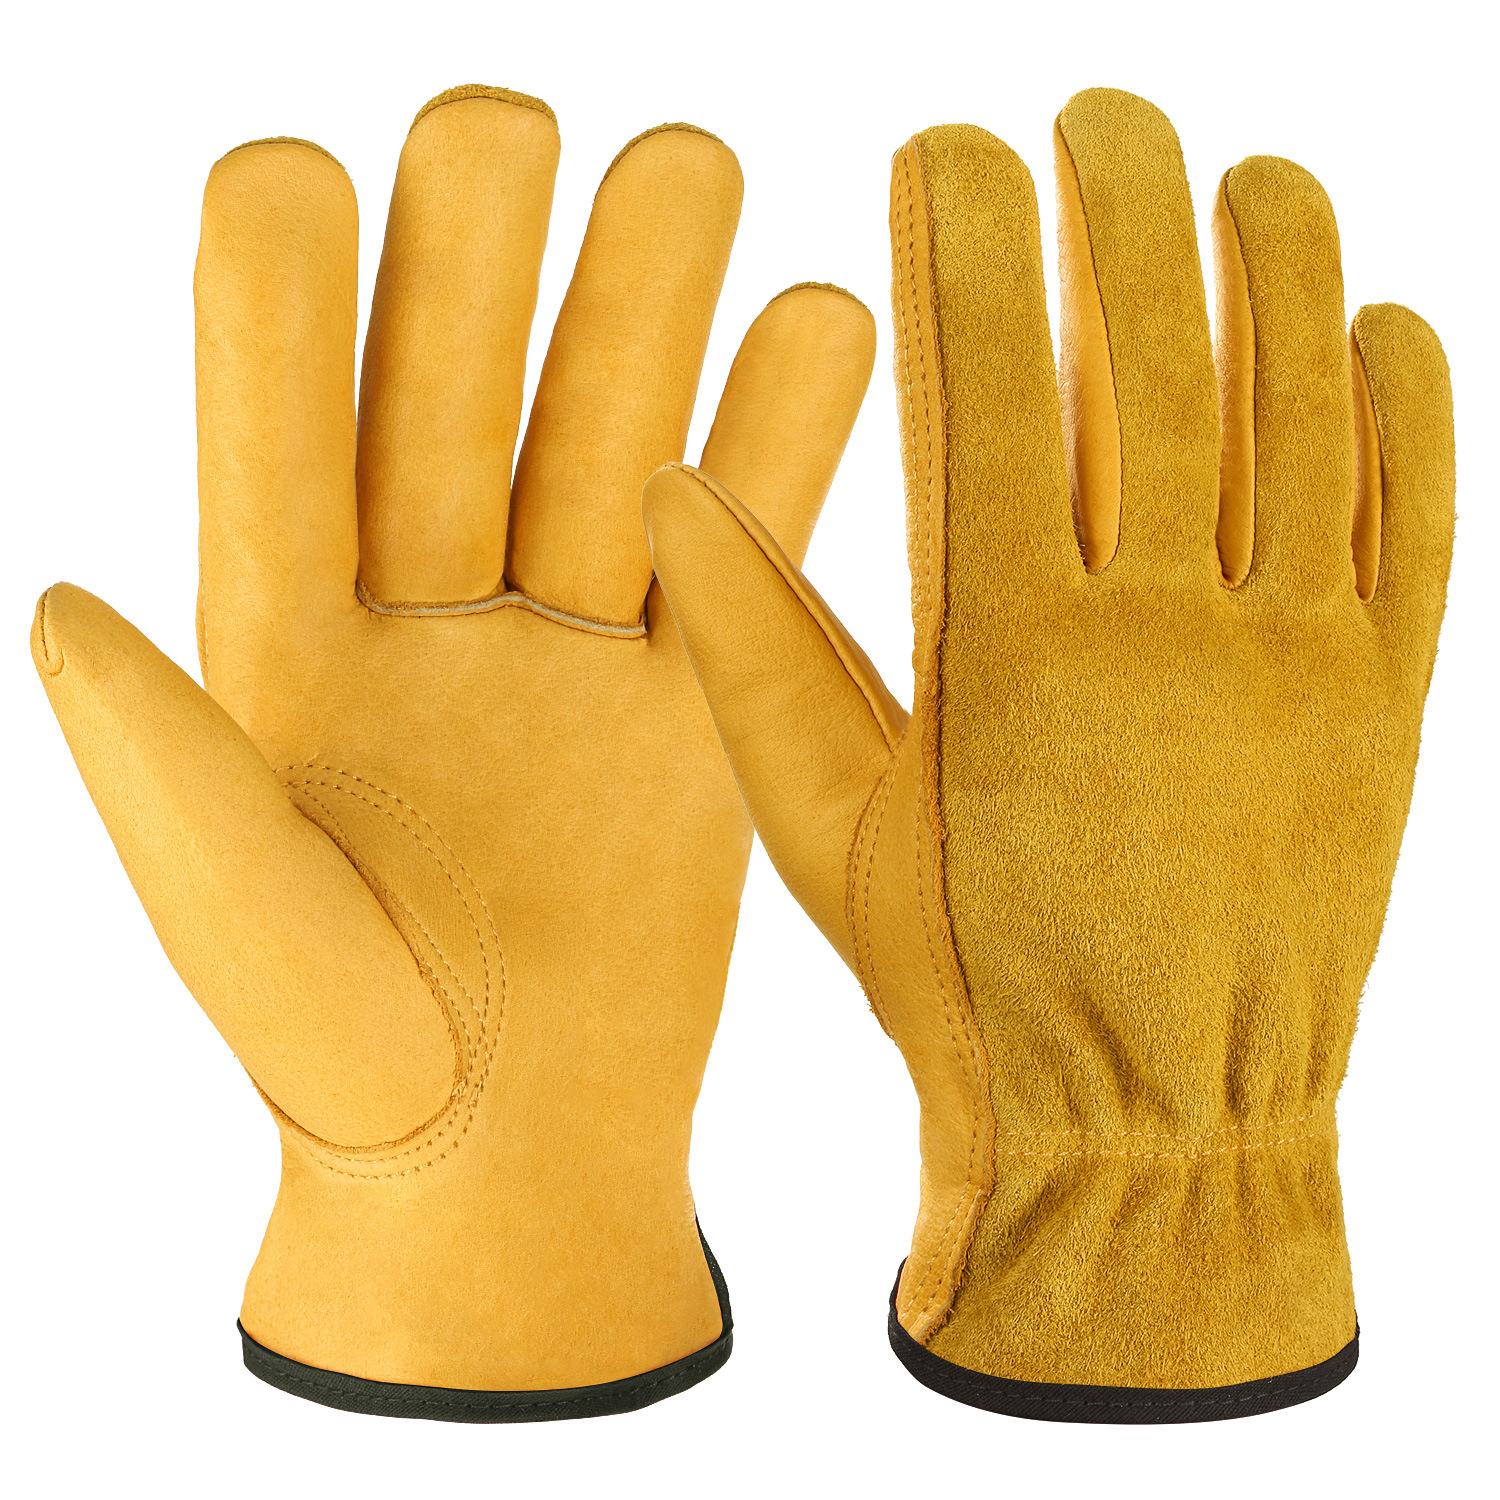 OZERO Aozhe leather double layer labor protection gloves full leather garden gloves safety protectio